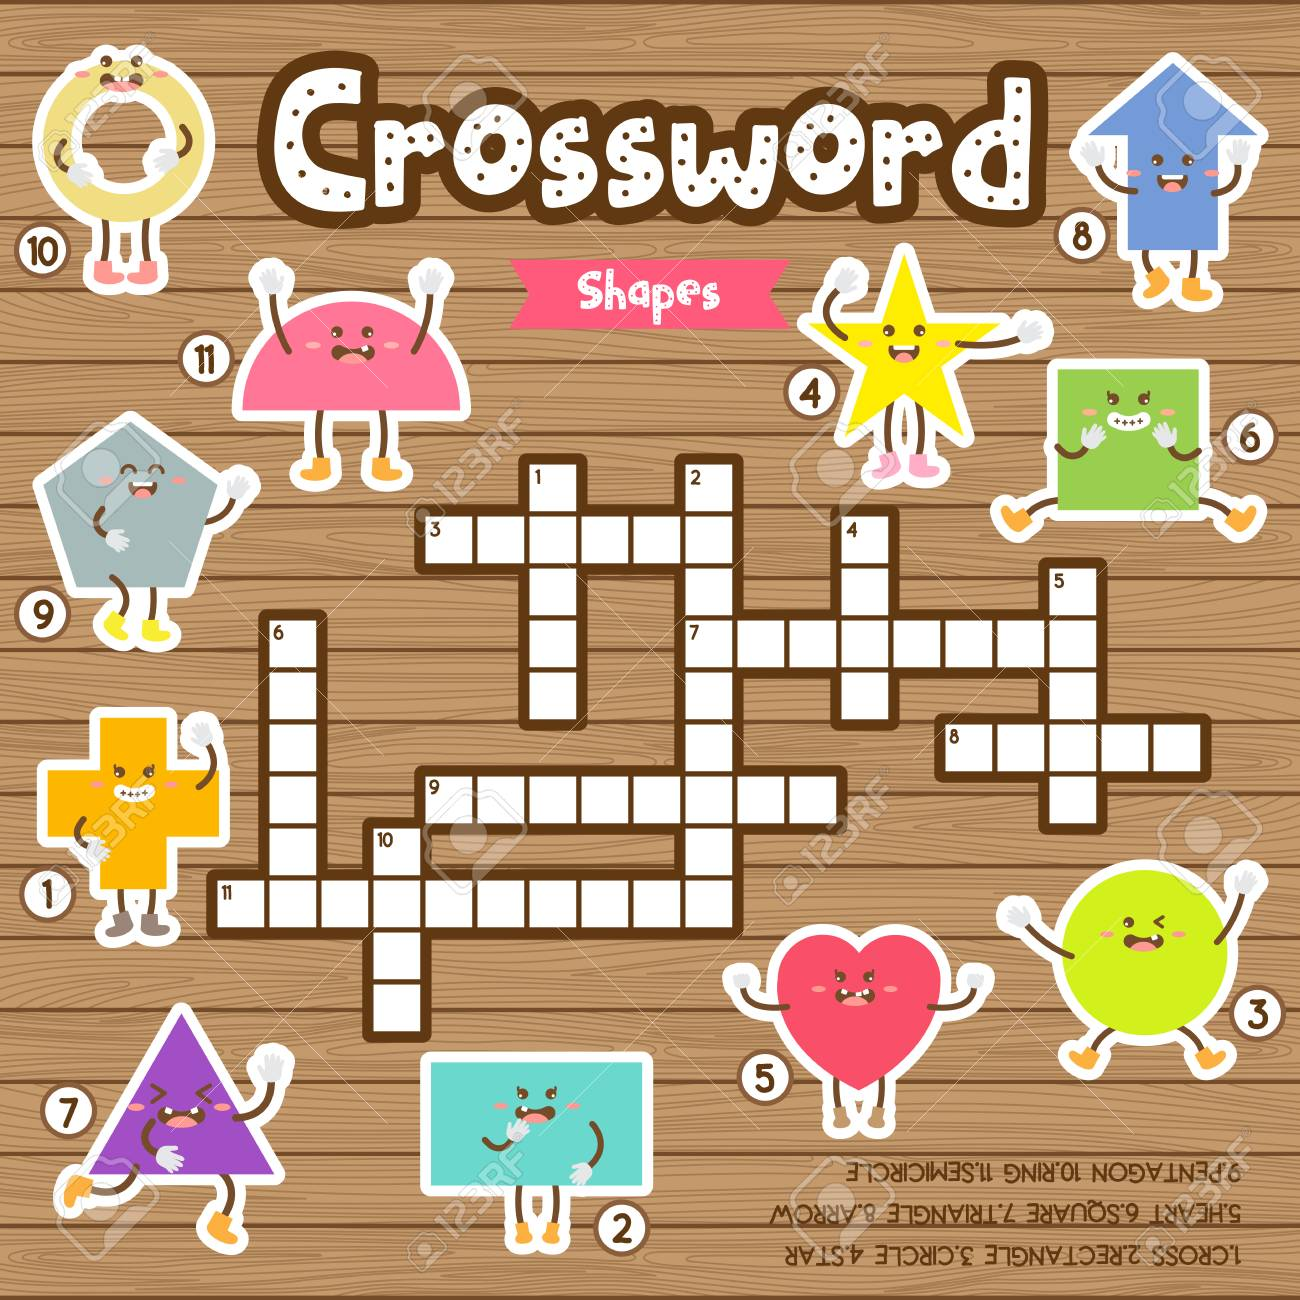 photograph about Star Magazine Crossword Puzzles Printable identify Crosswords puzzle video game of designs for preschool children recreation..